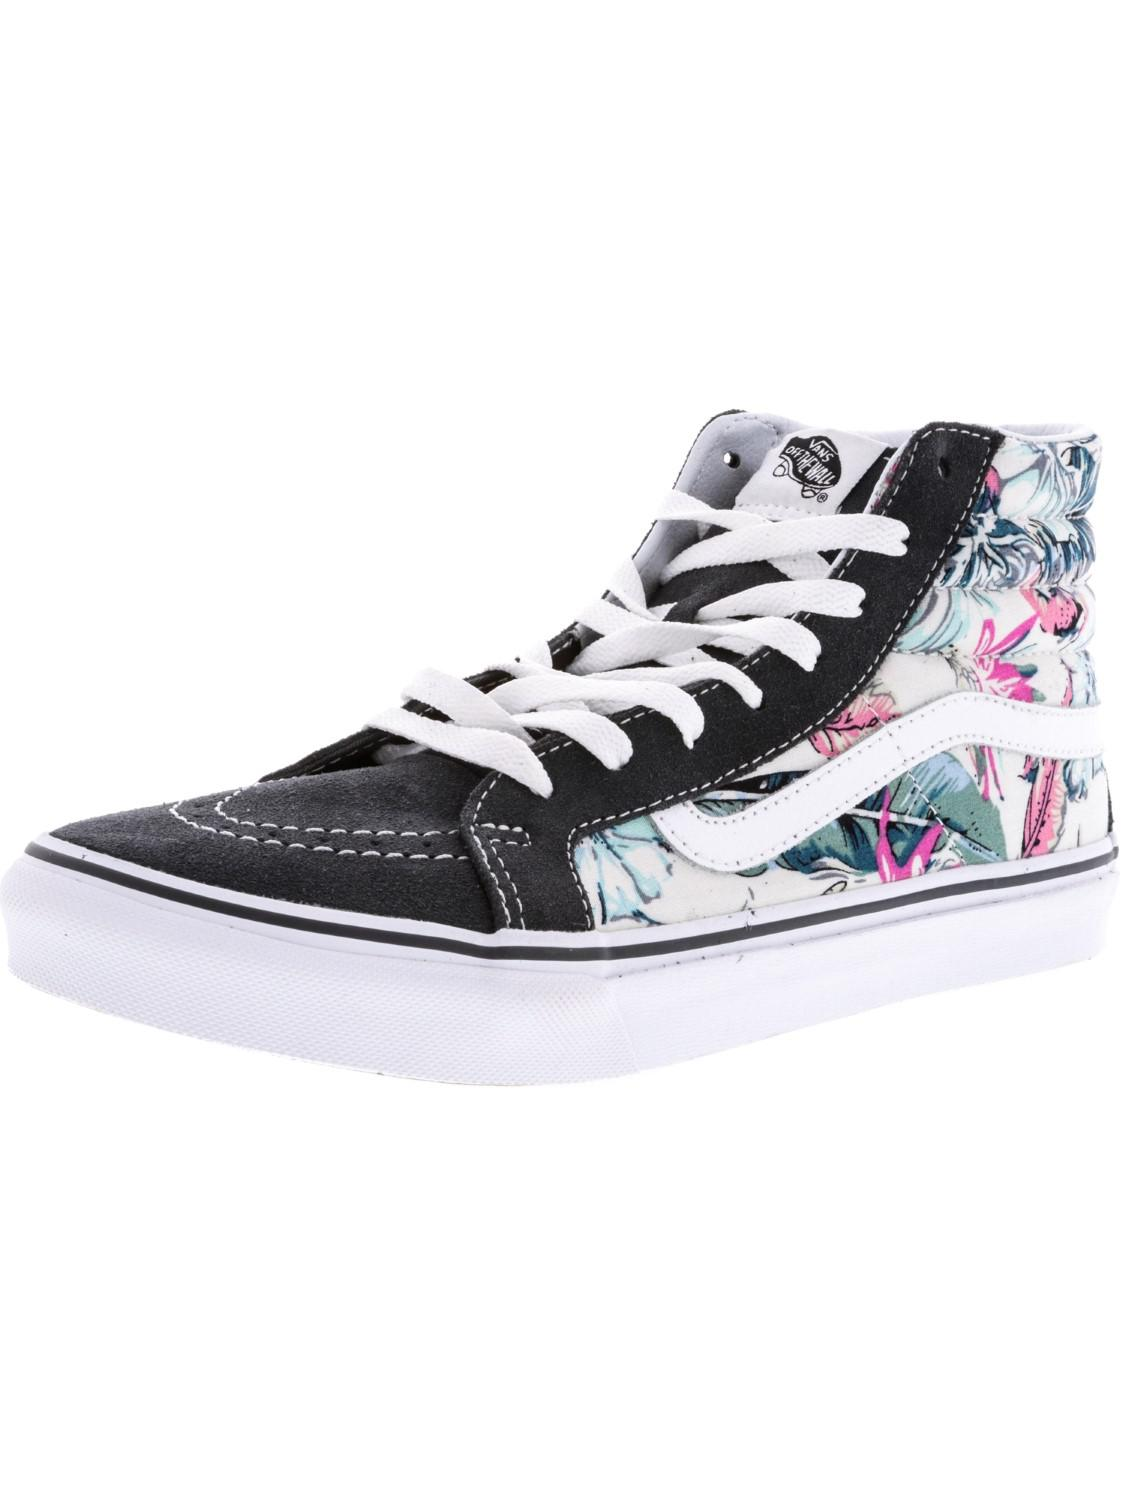 53a2de3800 Lyst - Vans Sk8-hi Slim Tropical High-top Fabric Skateboarding Shoe ...